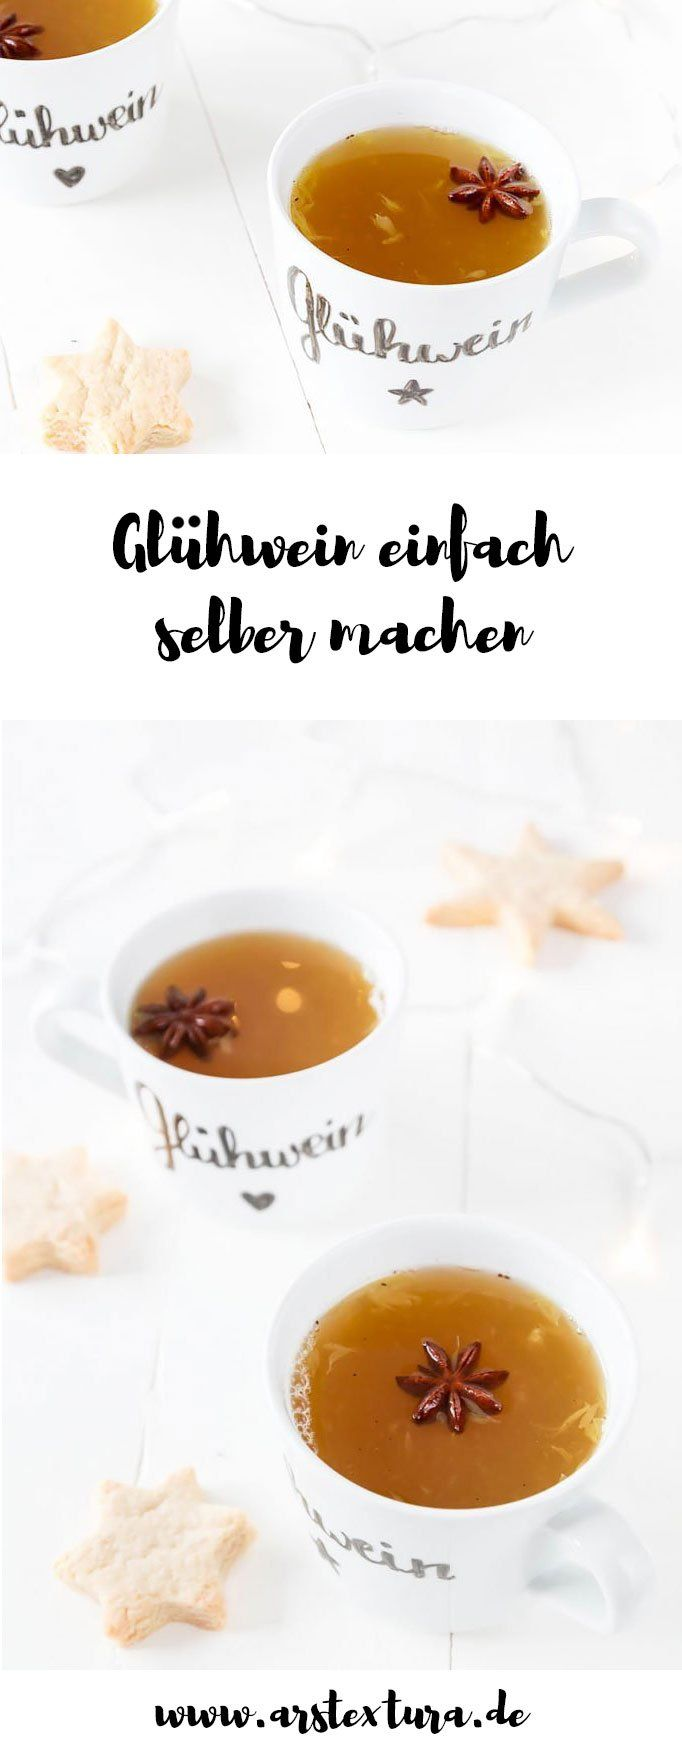 3 wei er gl hwein einfach selbstgemacht x mas pinterest weisser gl hwein rezept wei er. Black Bedroom Furniture Sets. Home Design Ideas